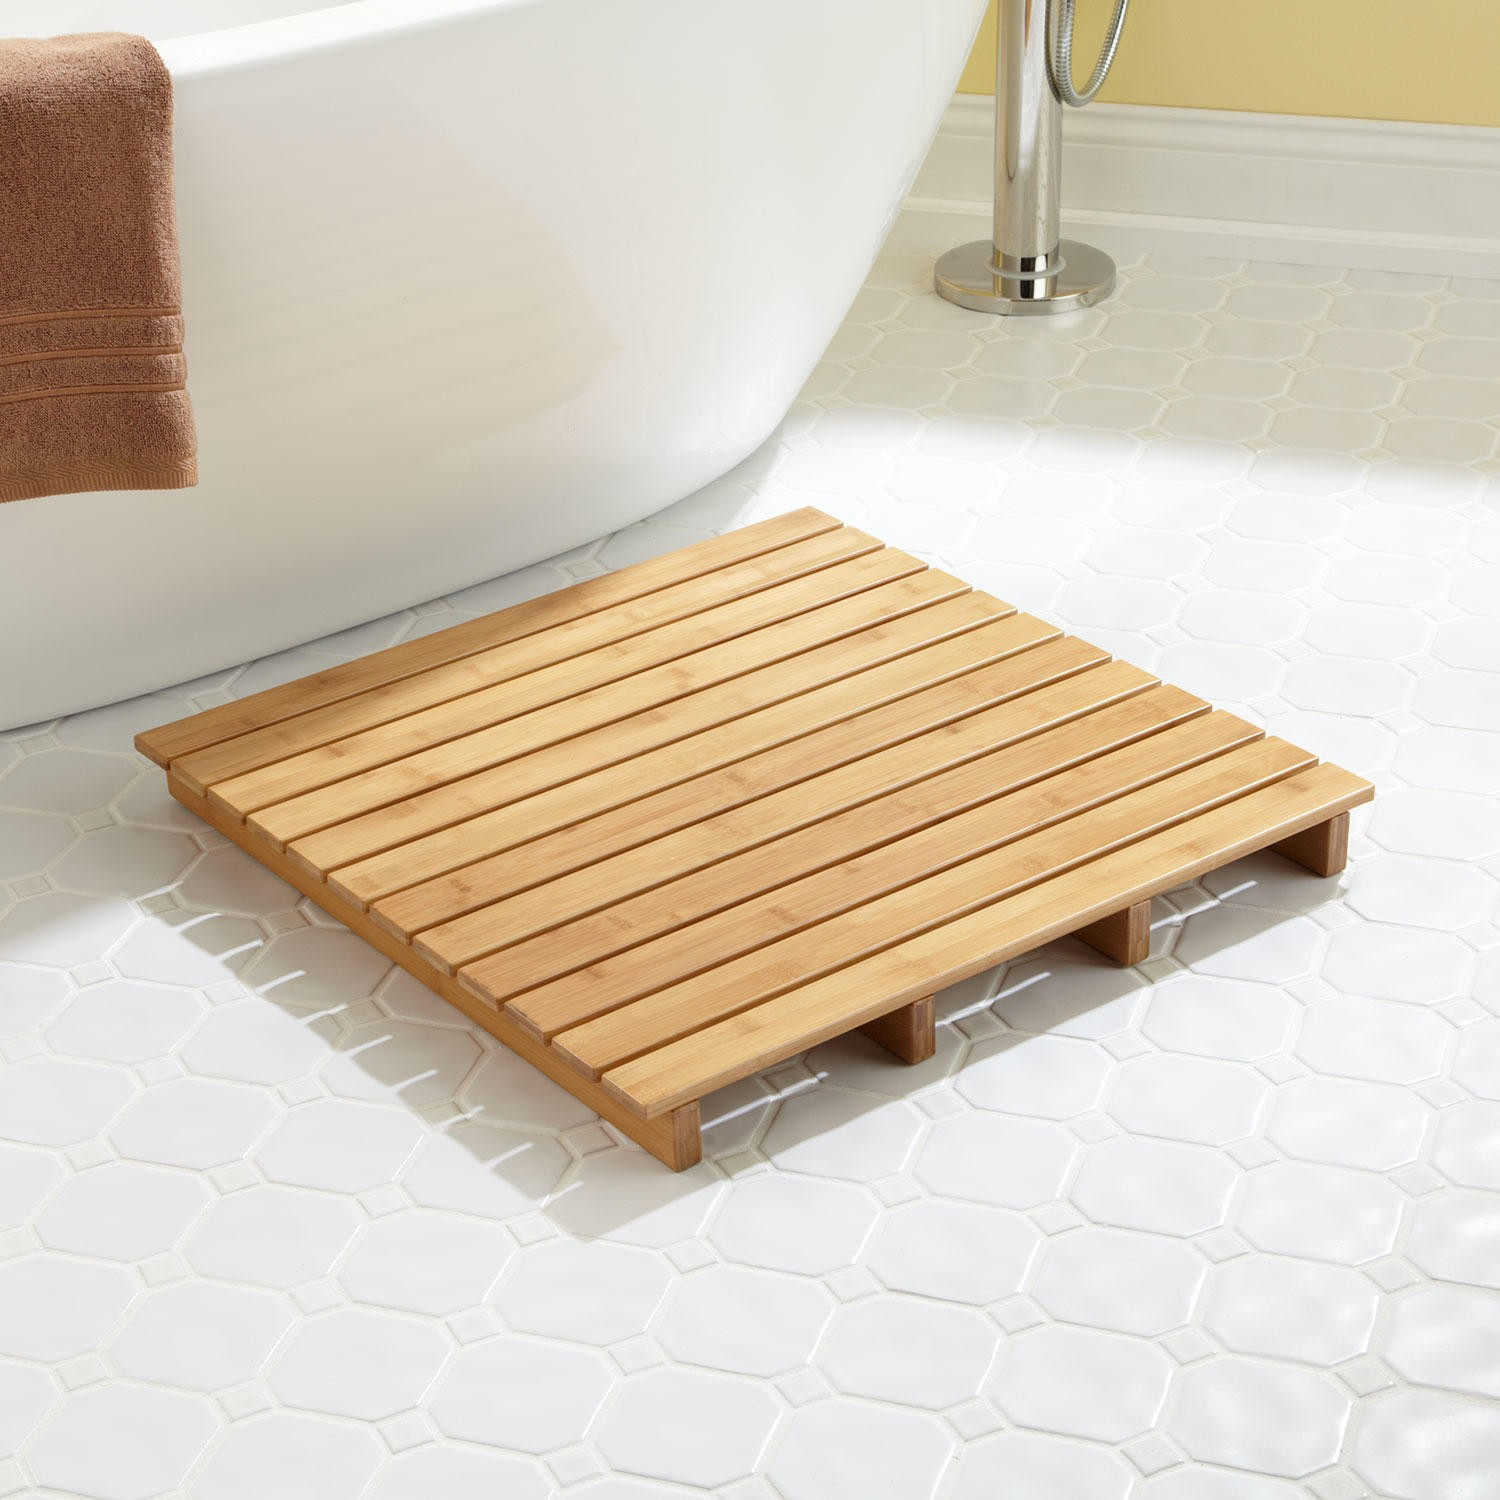 Bath Mat Ideas To Make Your Bathroom Feel More Like A Spa - Bathroom runner mats for bathroom decorating ideas